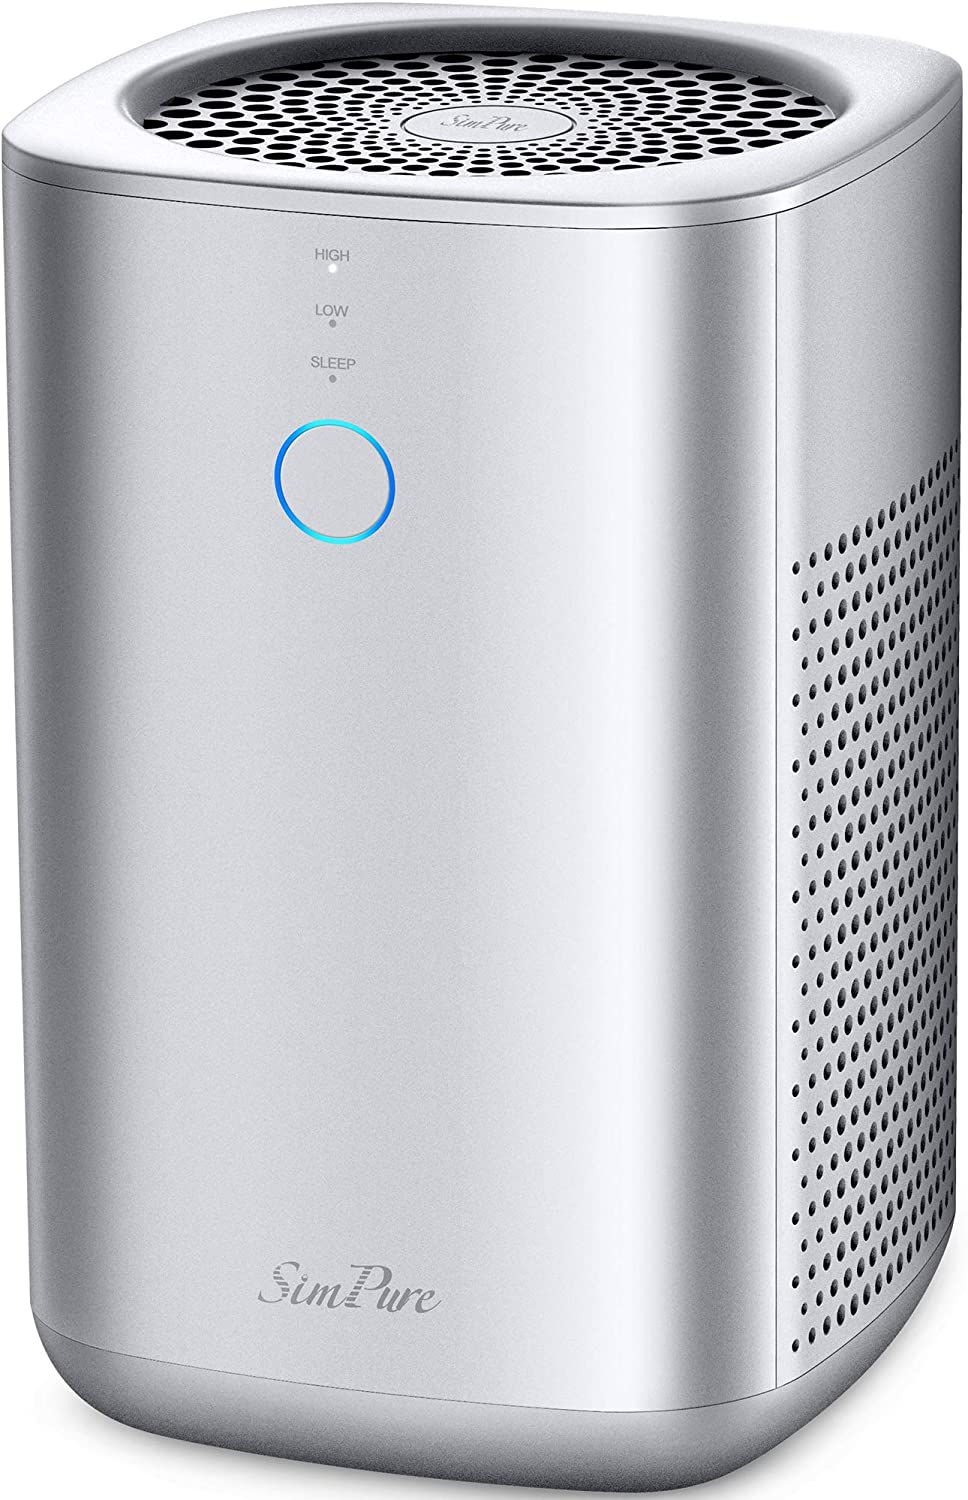 SimPure Air Purifier for Home & Office with Ture HEPA Filter, 24db Filtration System with ARC Formula, Remove 99.98% Odors Smoke Dust Mold Pollen - Silver